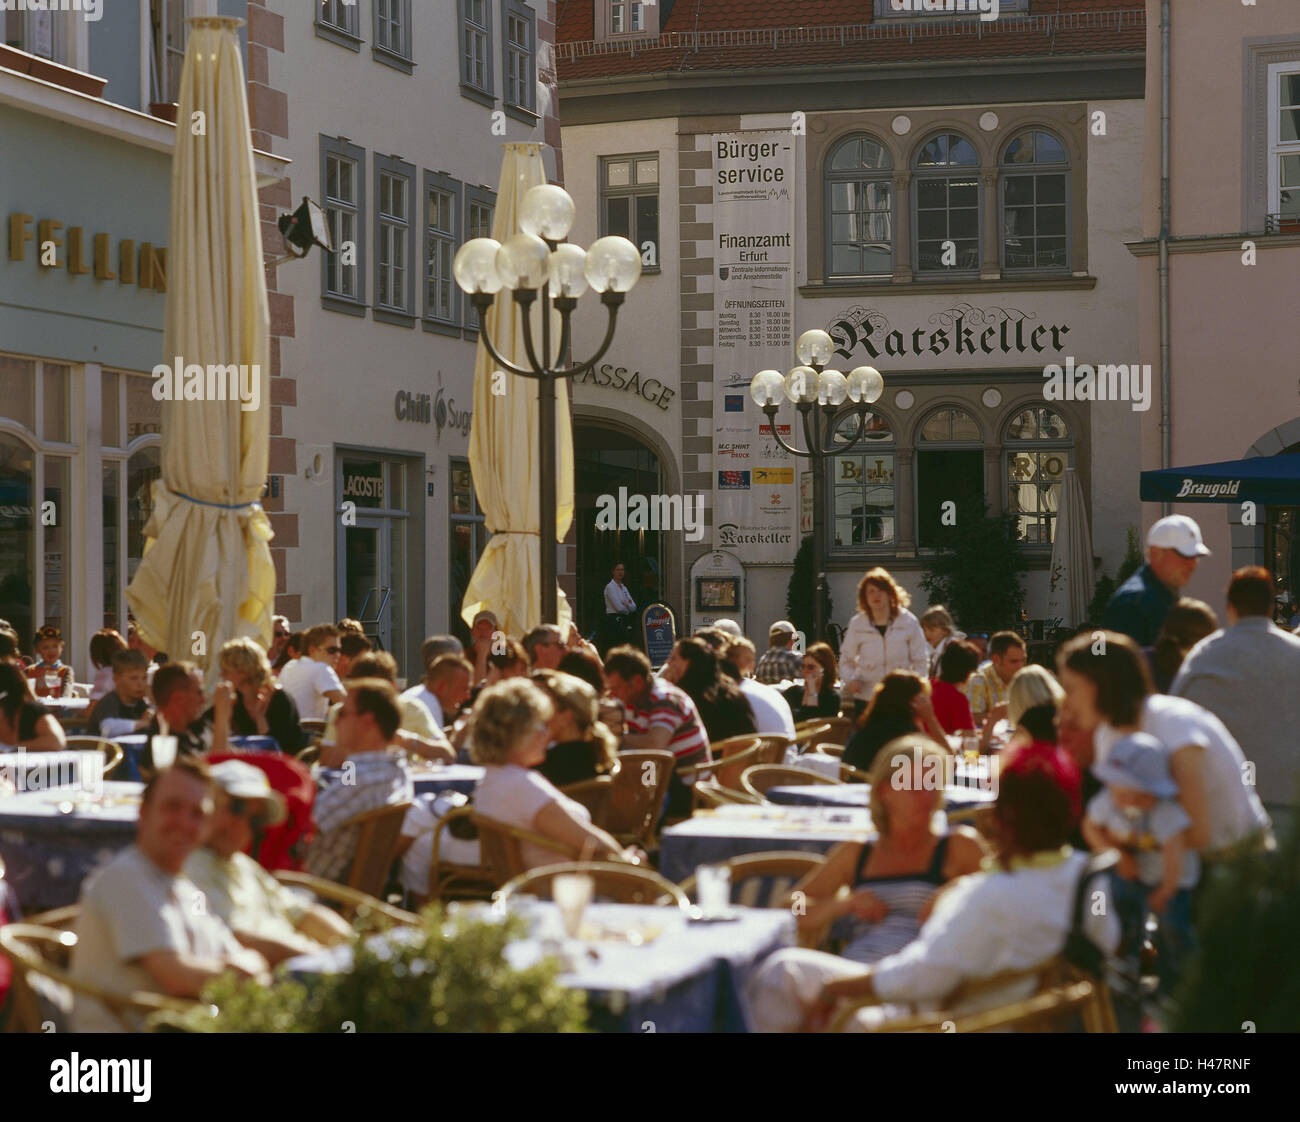 Germany, Thuringia, Erfurt, Marktstrasse, street cafe, guests, town, space, cafe, bar, person, crowd people, tourist, - Stock Image